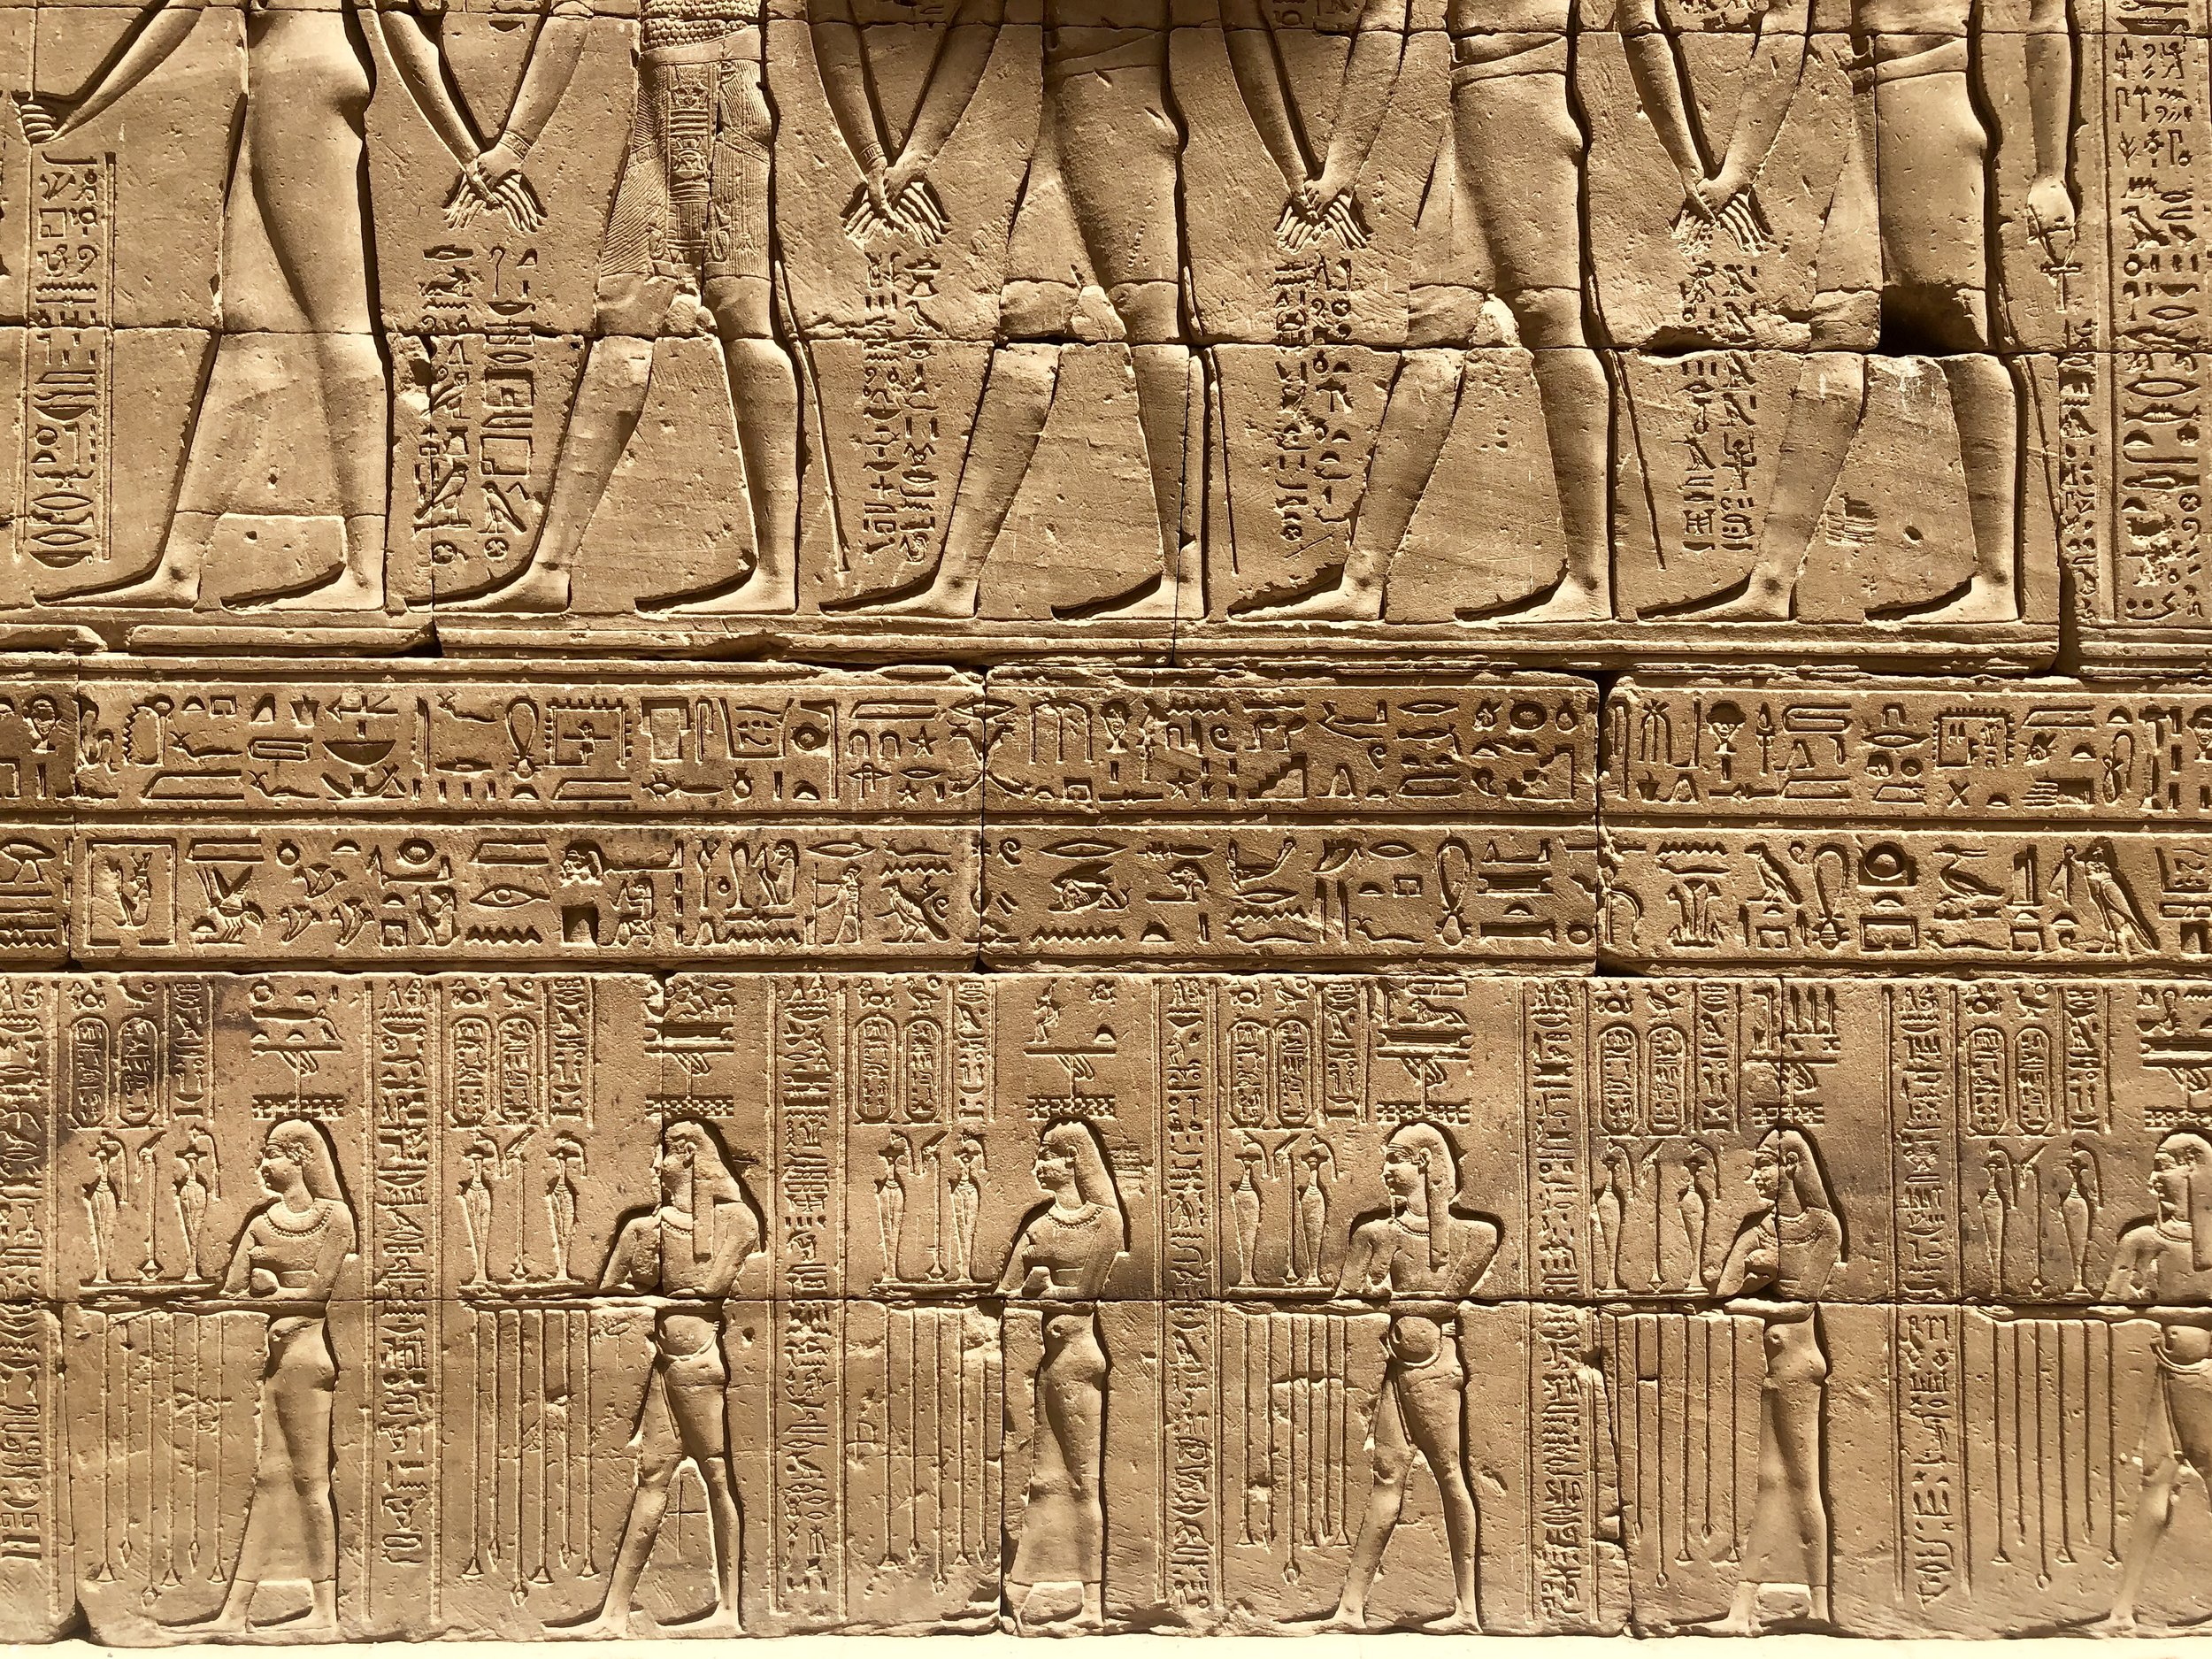 Only elites could read and write hieroglyphics, so pictures told the story